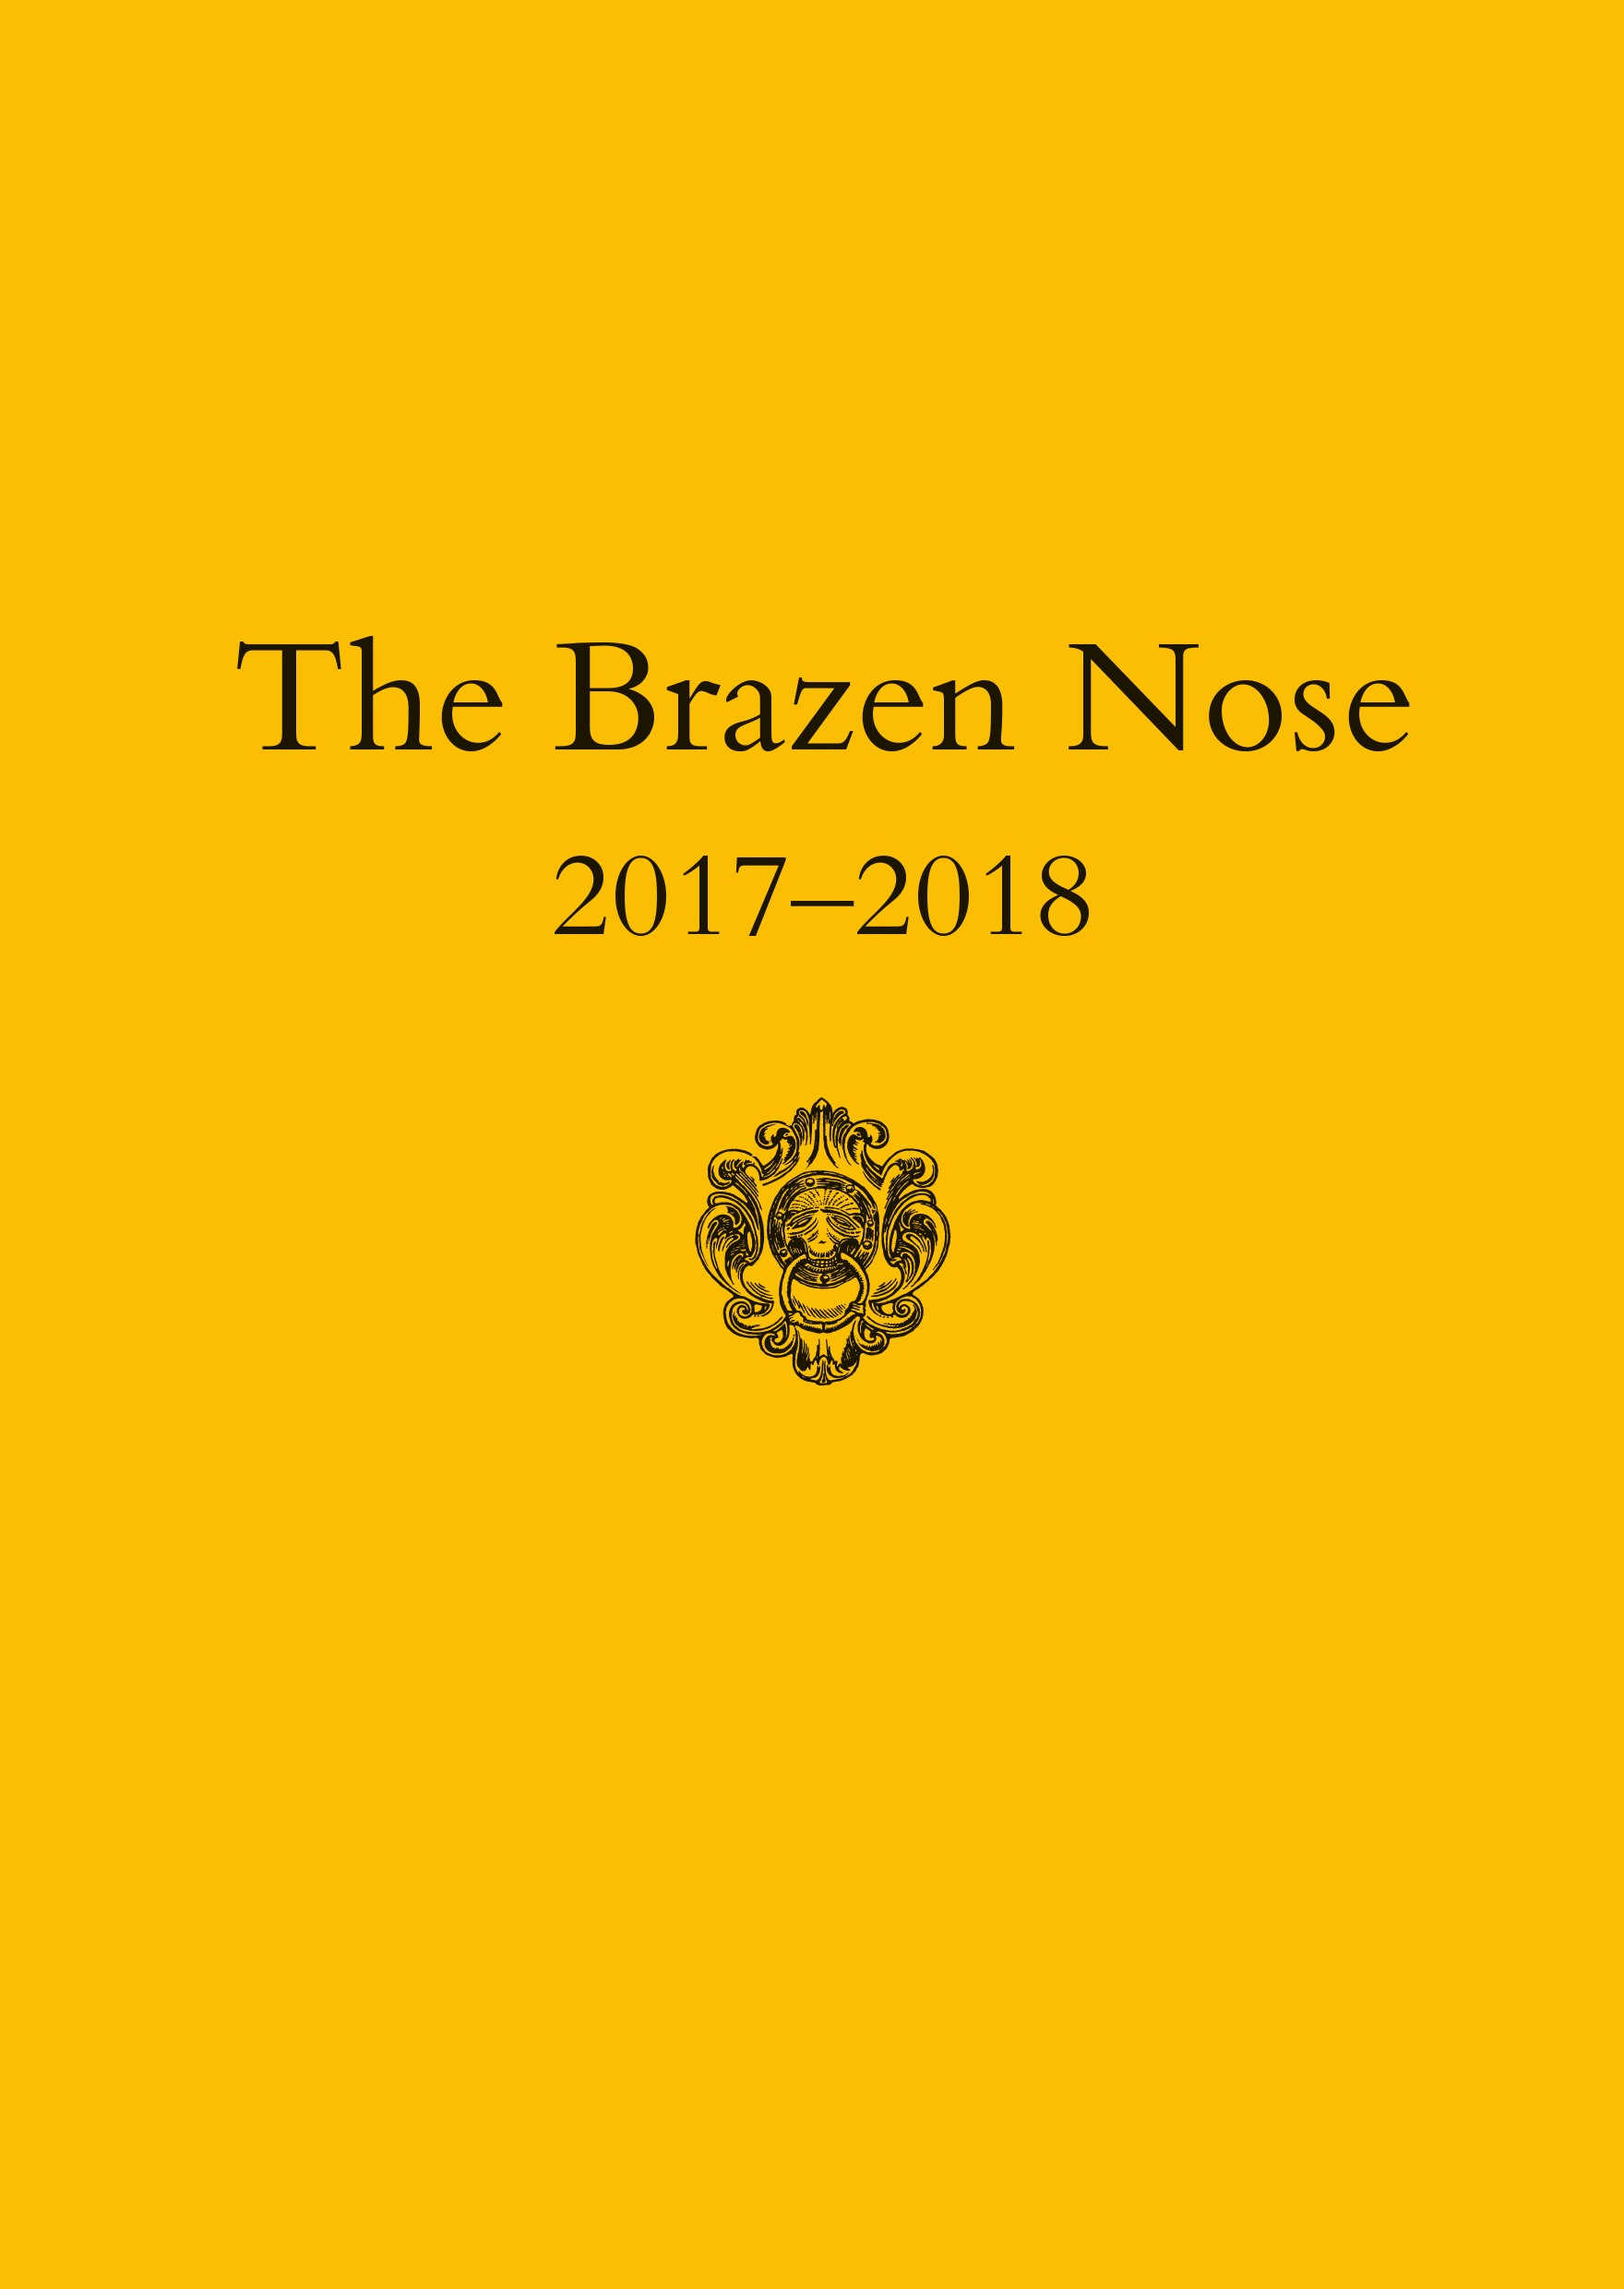 9d7074e01c0d The Brazen Nose